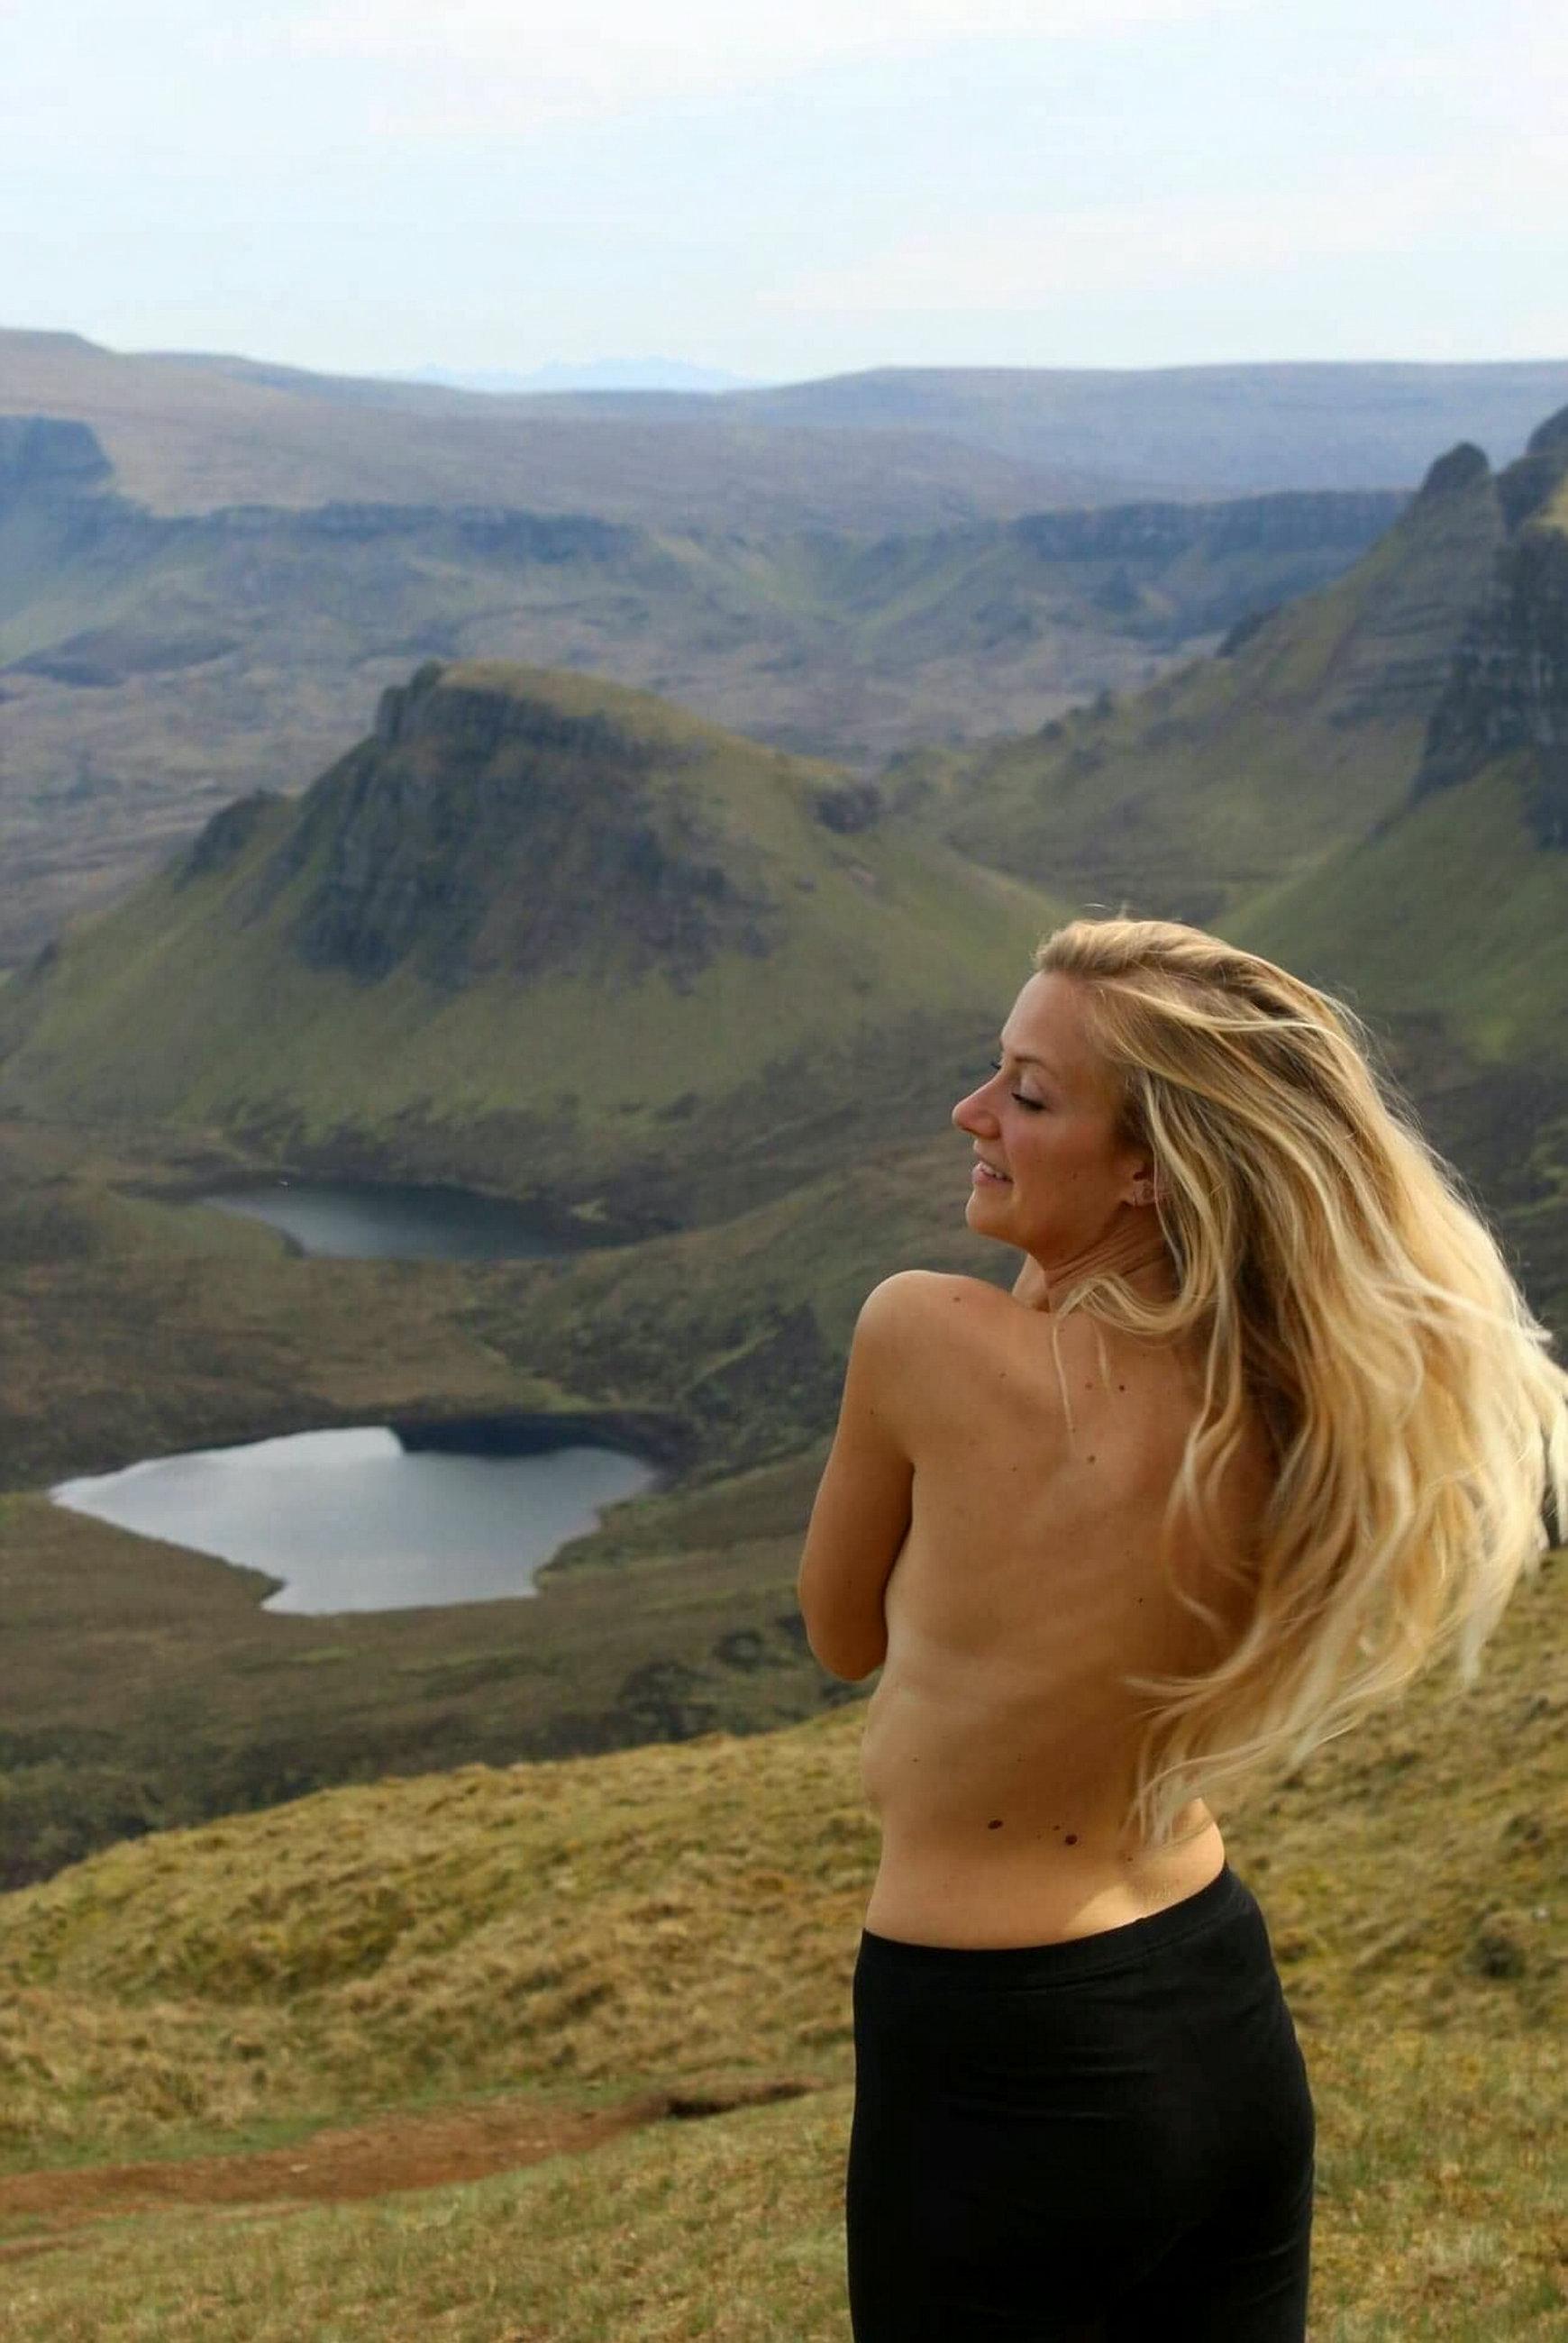 Lily lost the camera while visiting the Isle of Skye. Credit: SWNS